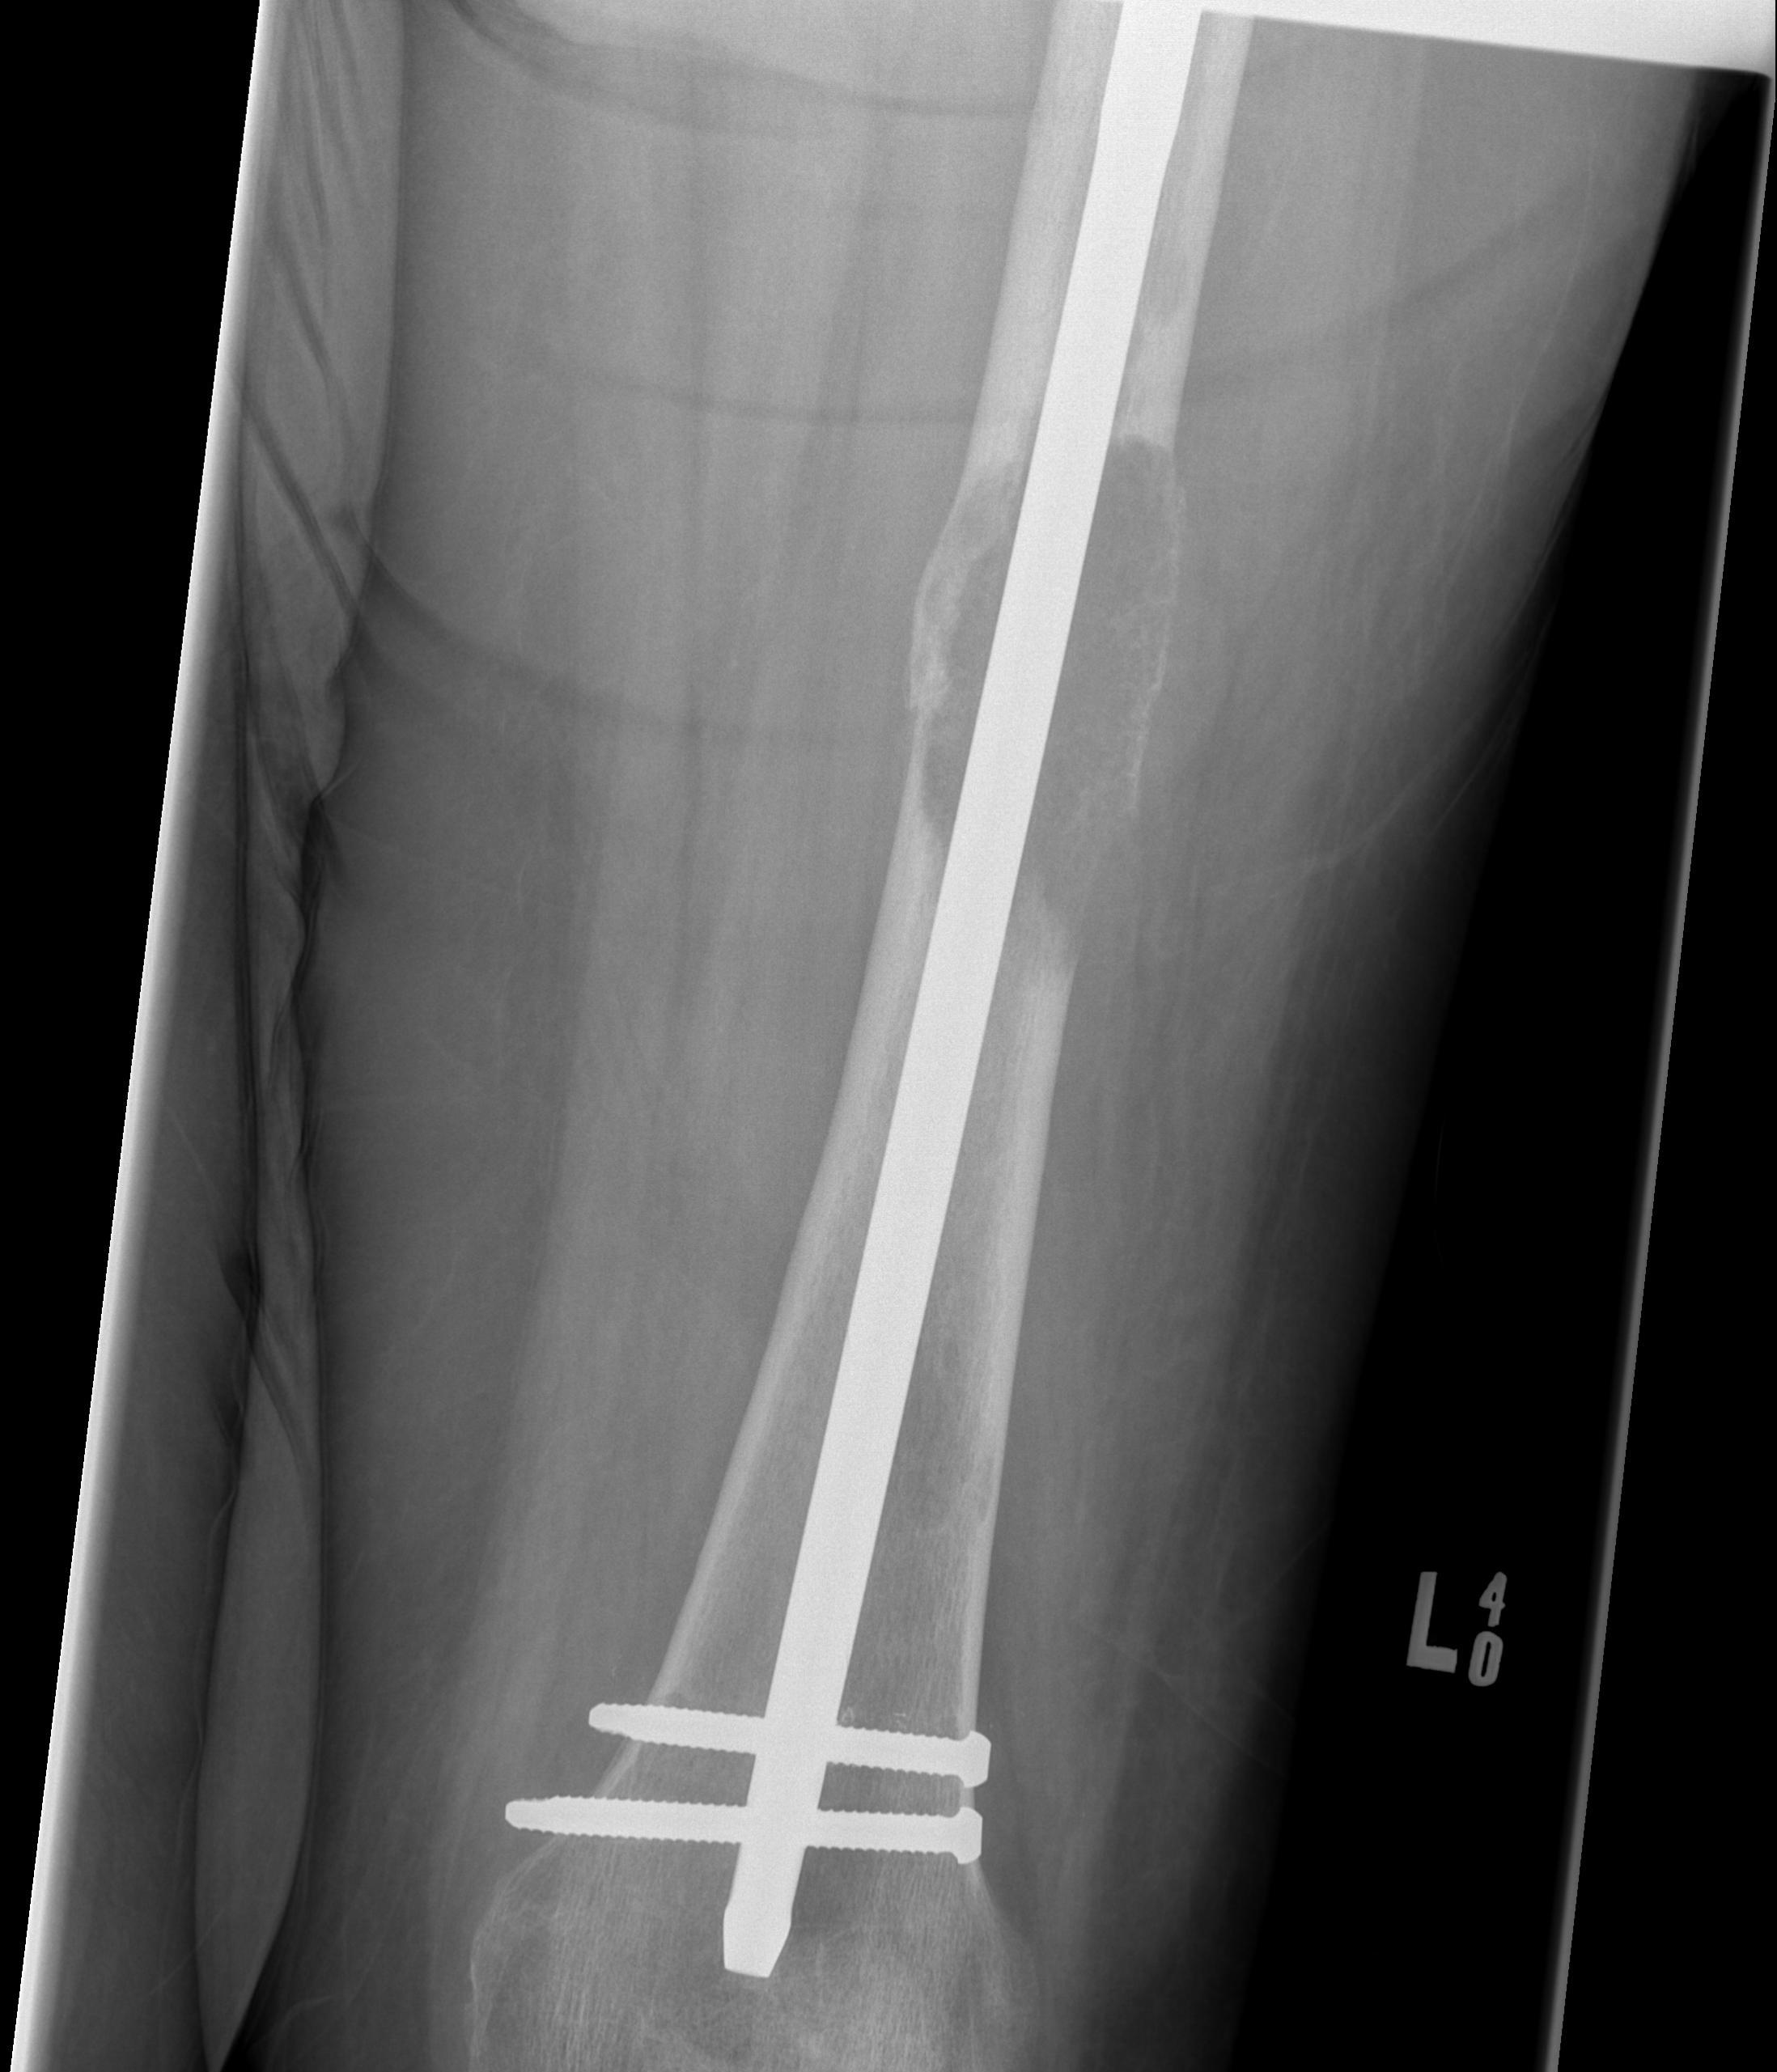 Metastasis Femoral Shaft0001